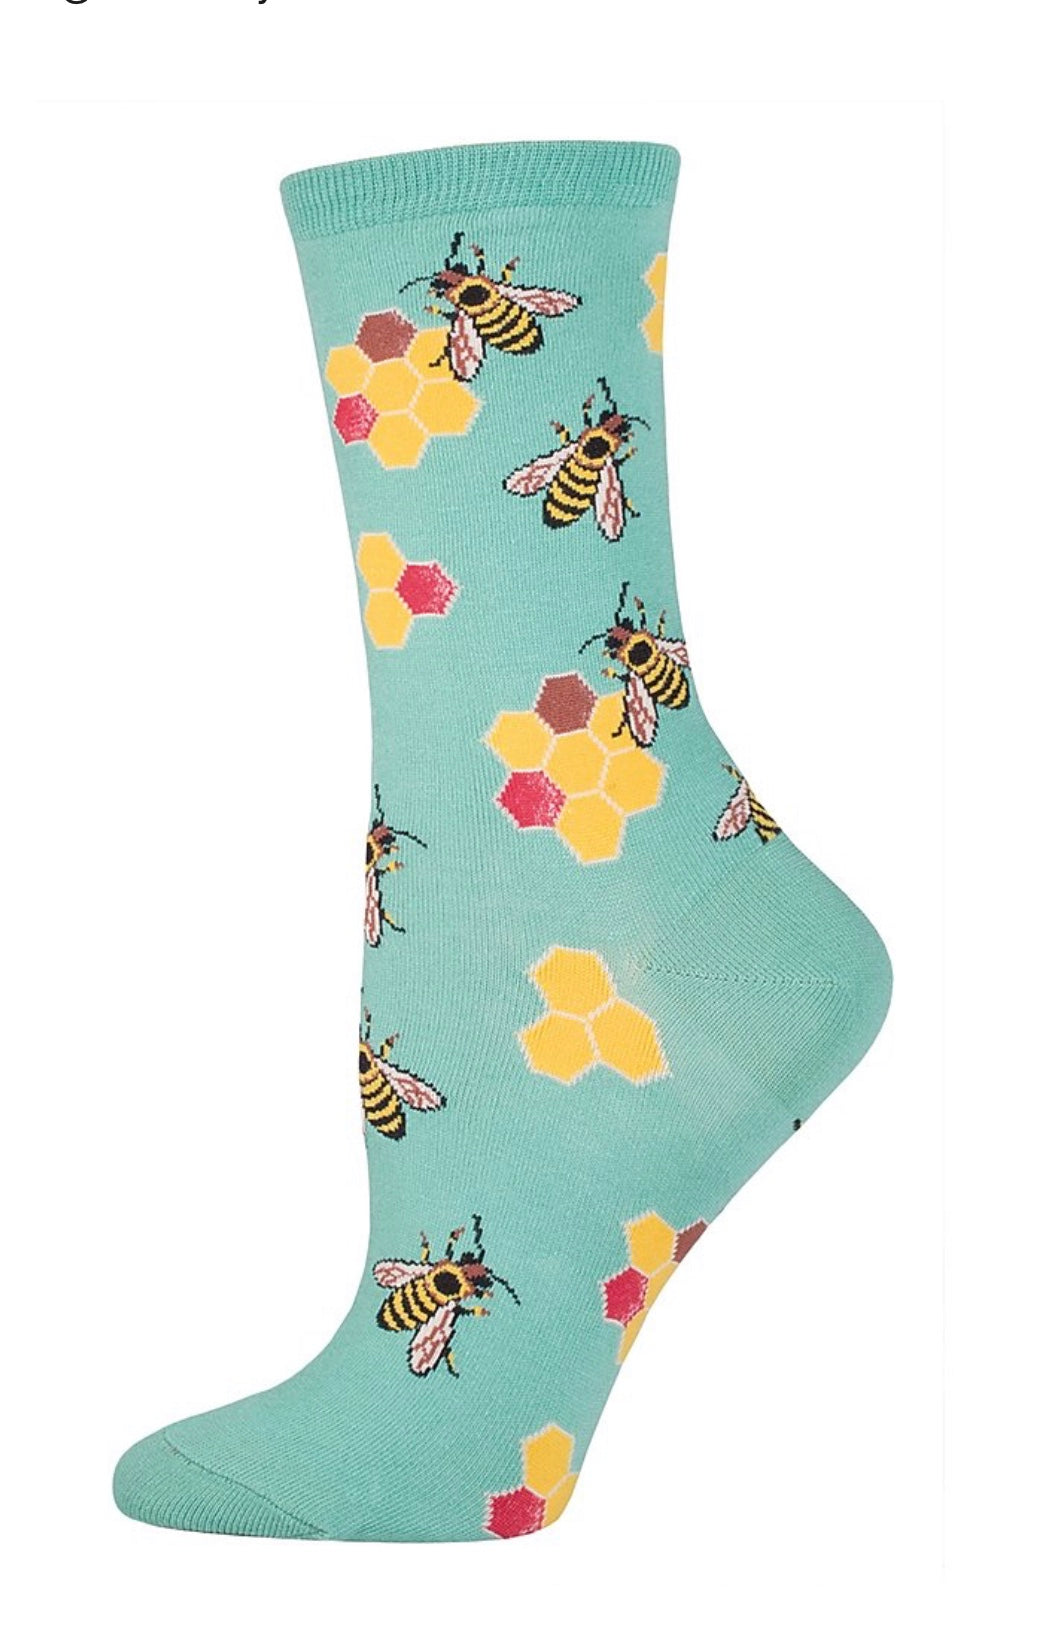 Socks - Women's Bees